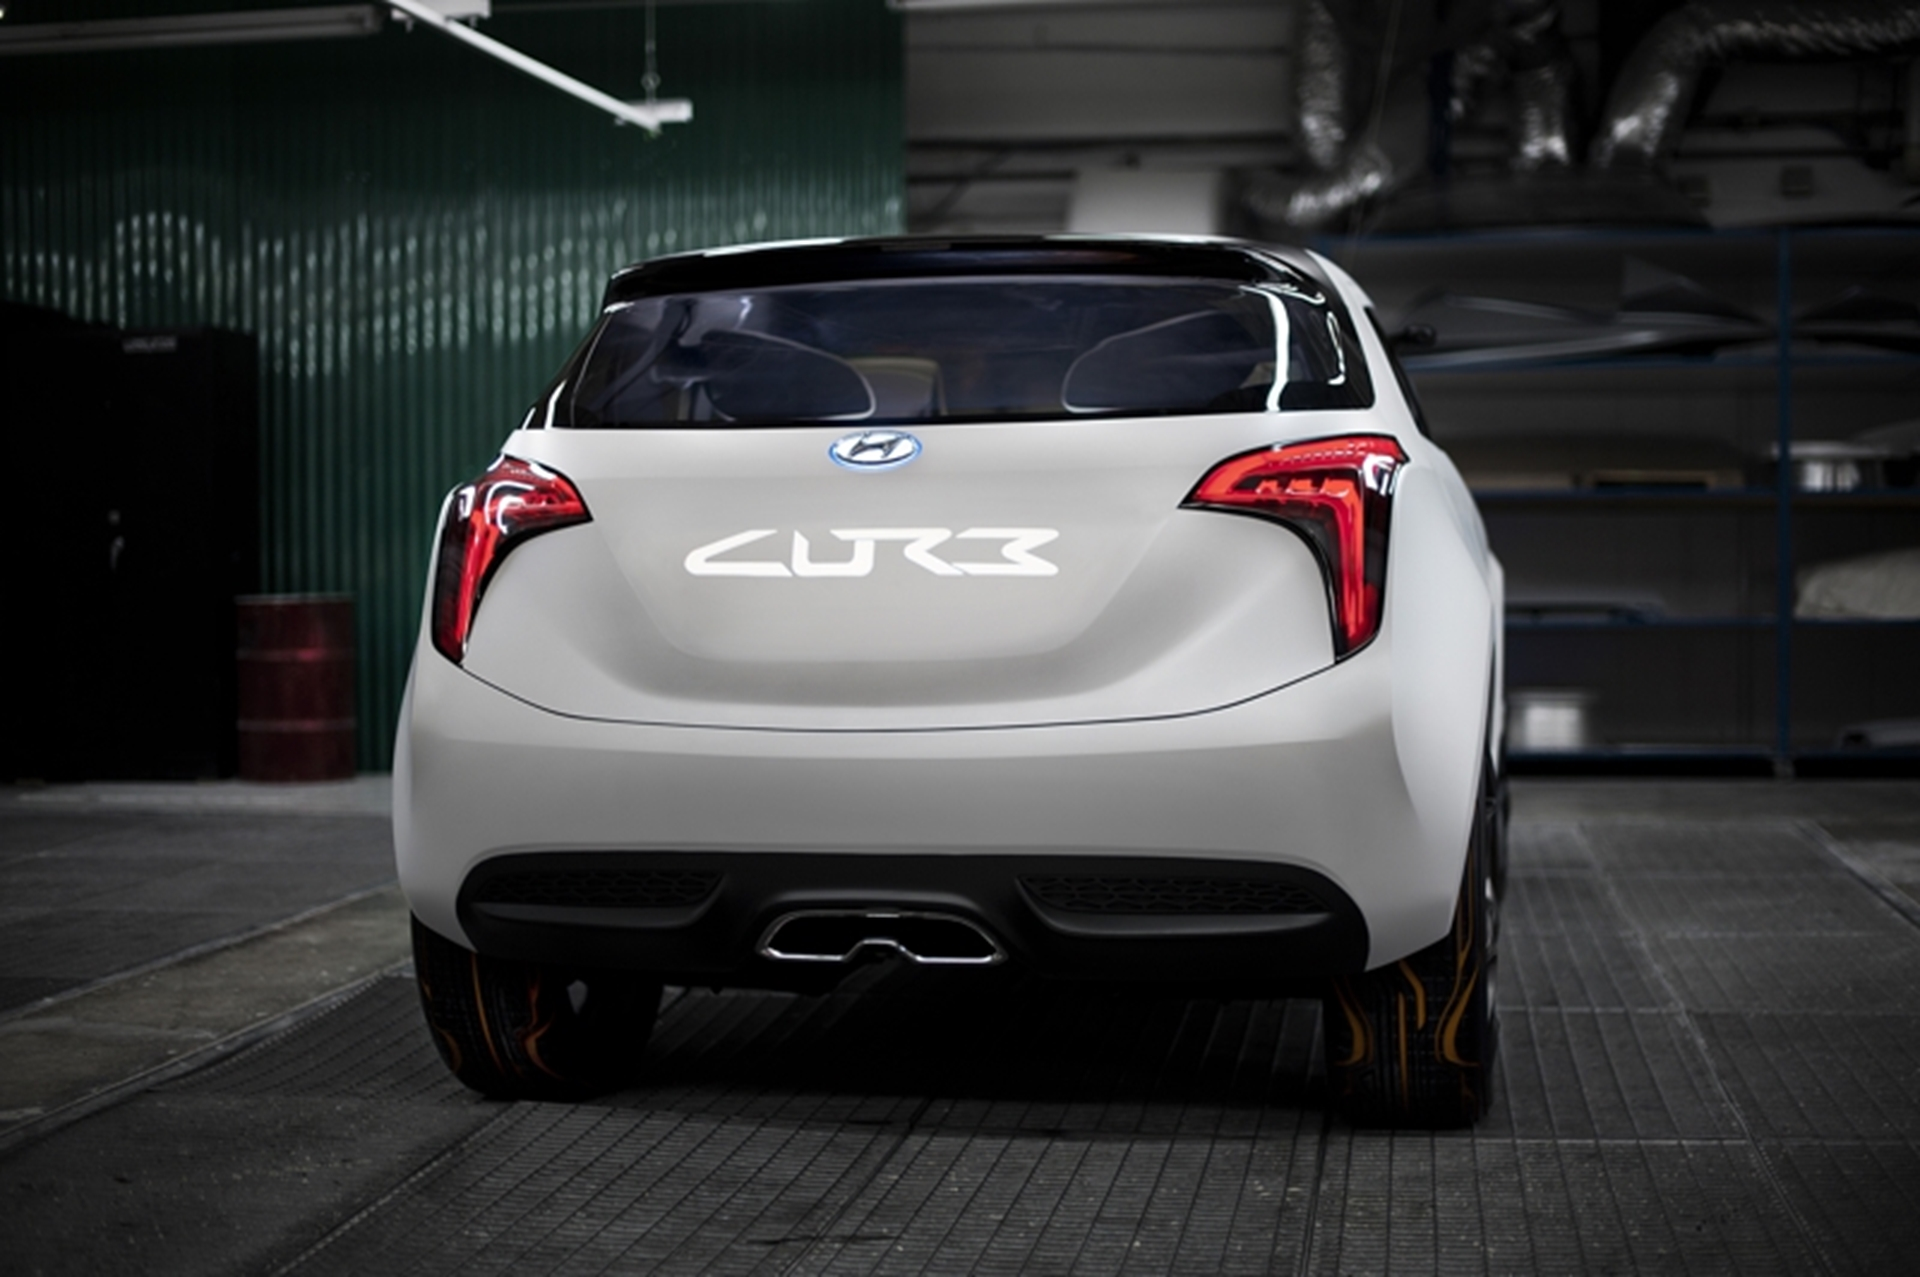 Hyundai Curb Concept Rear